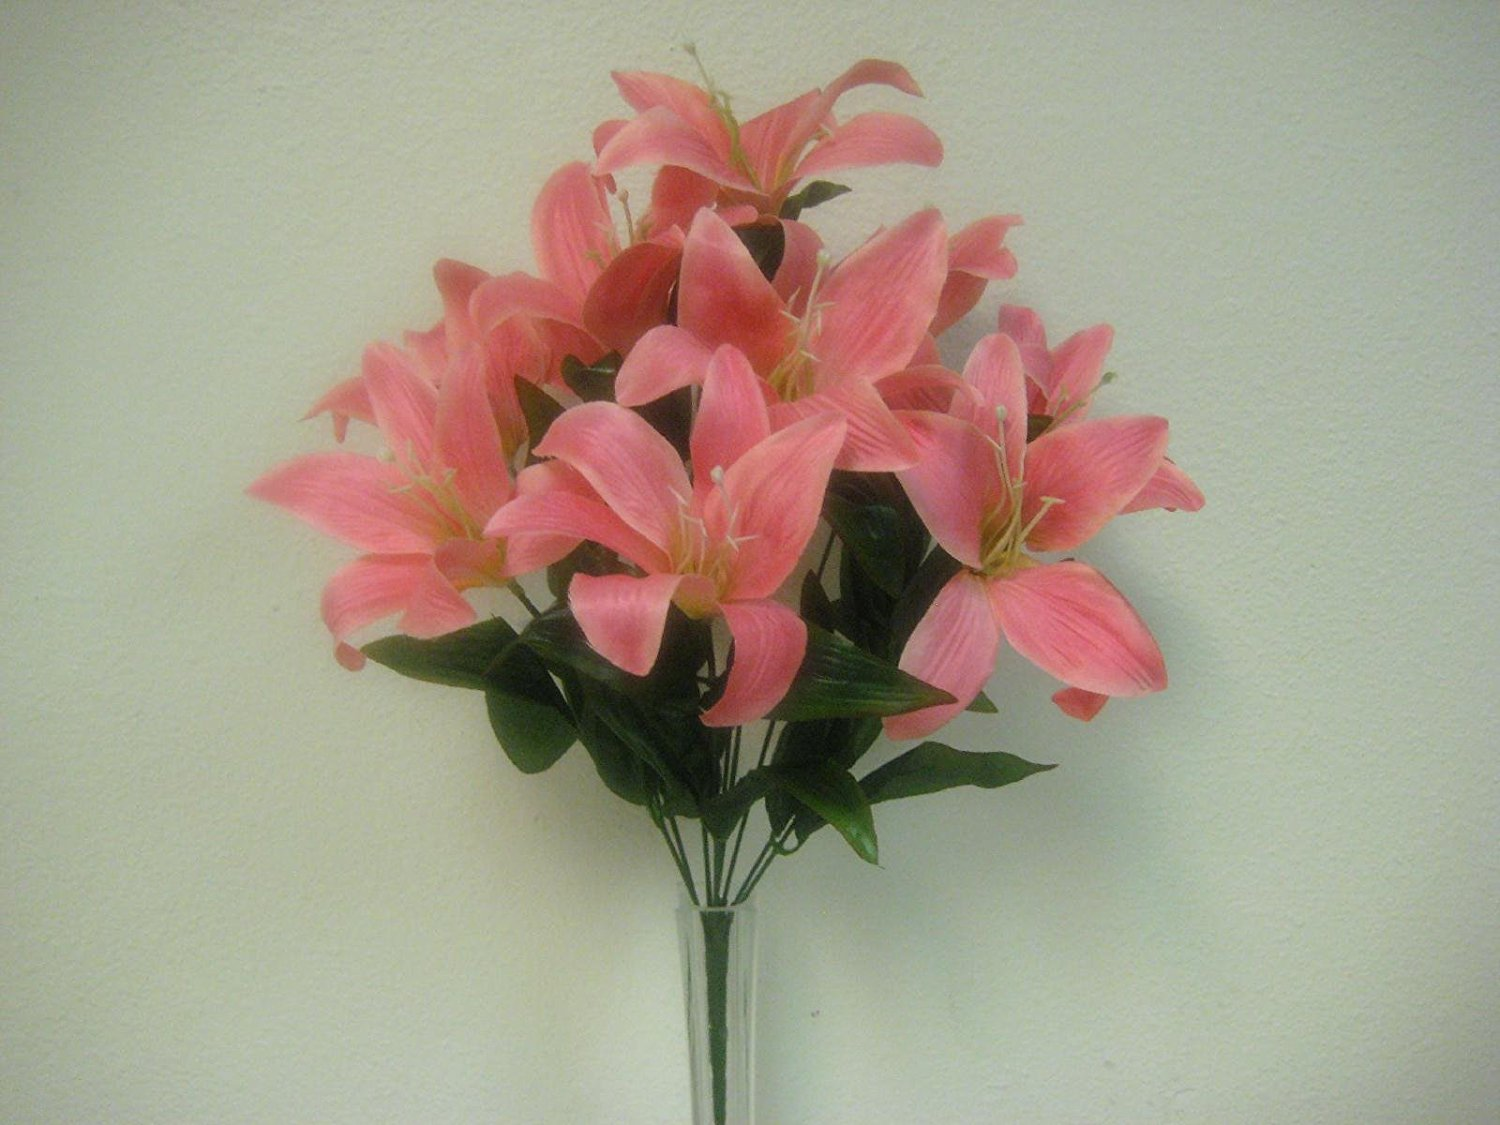 Cheap artificial tiger lily find artificial tiger lily deals on get quotations 2 bushes pink tiger lily artificial silk flowers 1 x 10 bouquet 4069pk izmirmasajfo